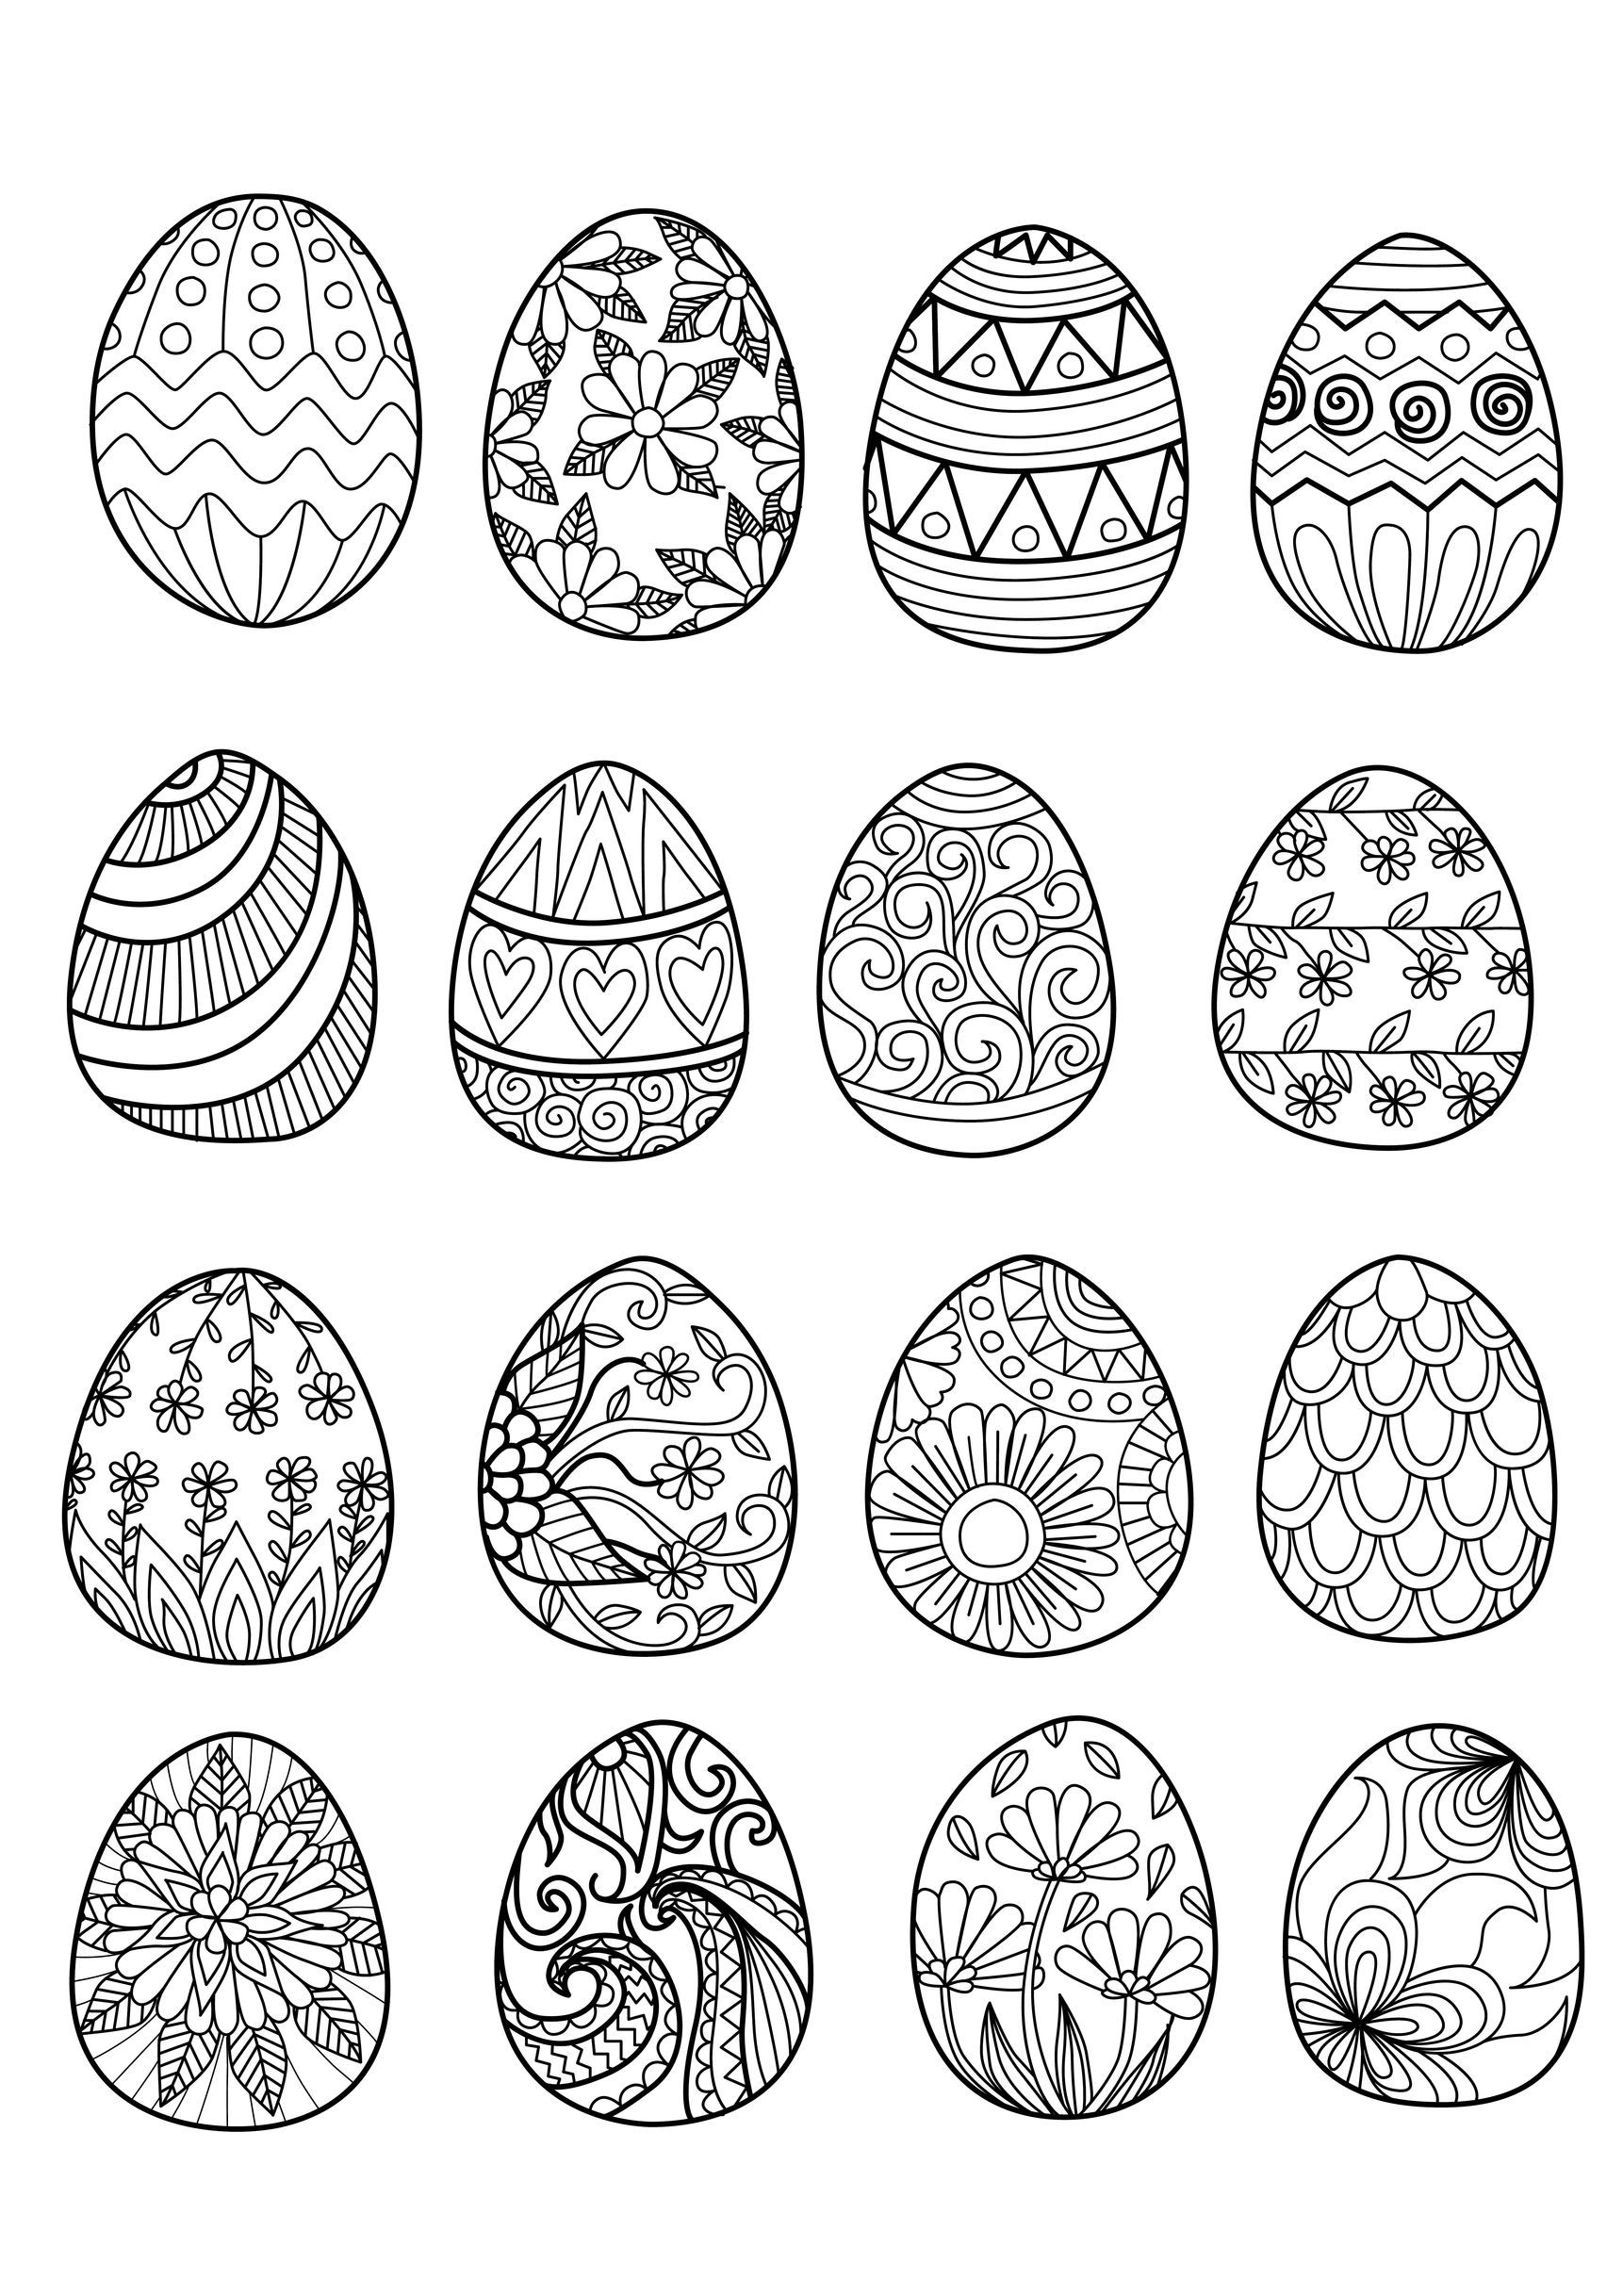 49153947 - easter eggs for coloring book, From the gallery : Events ...